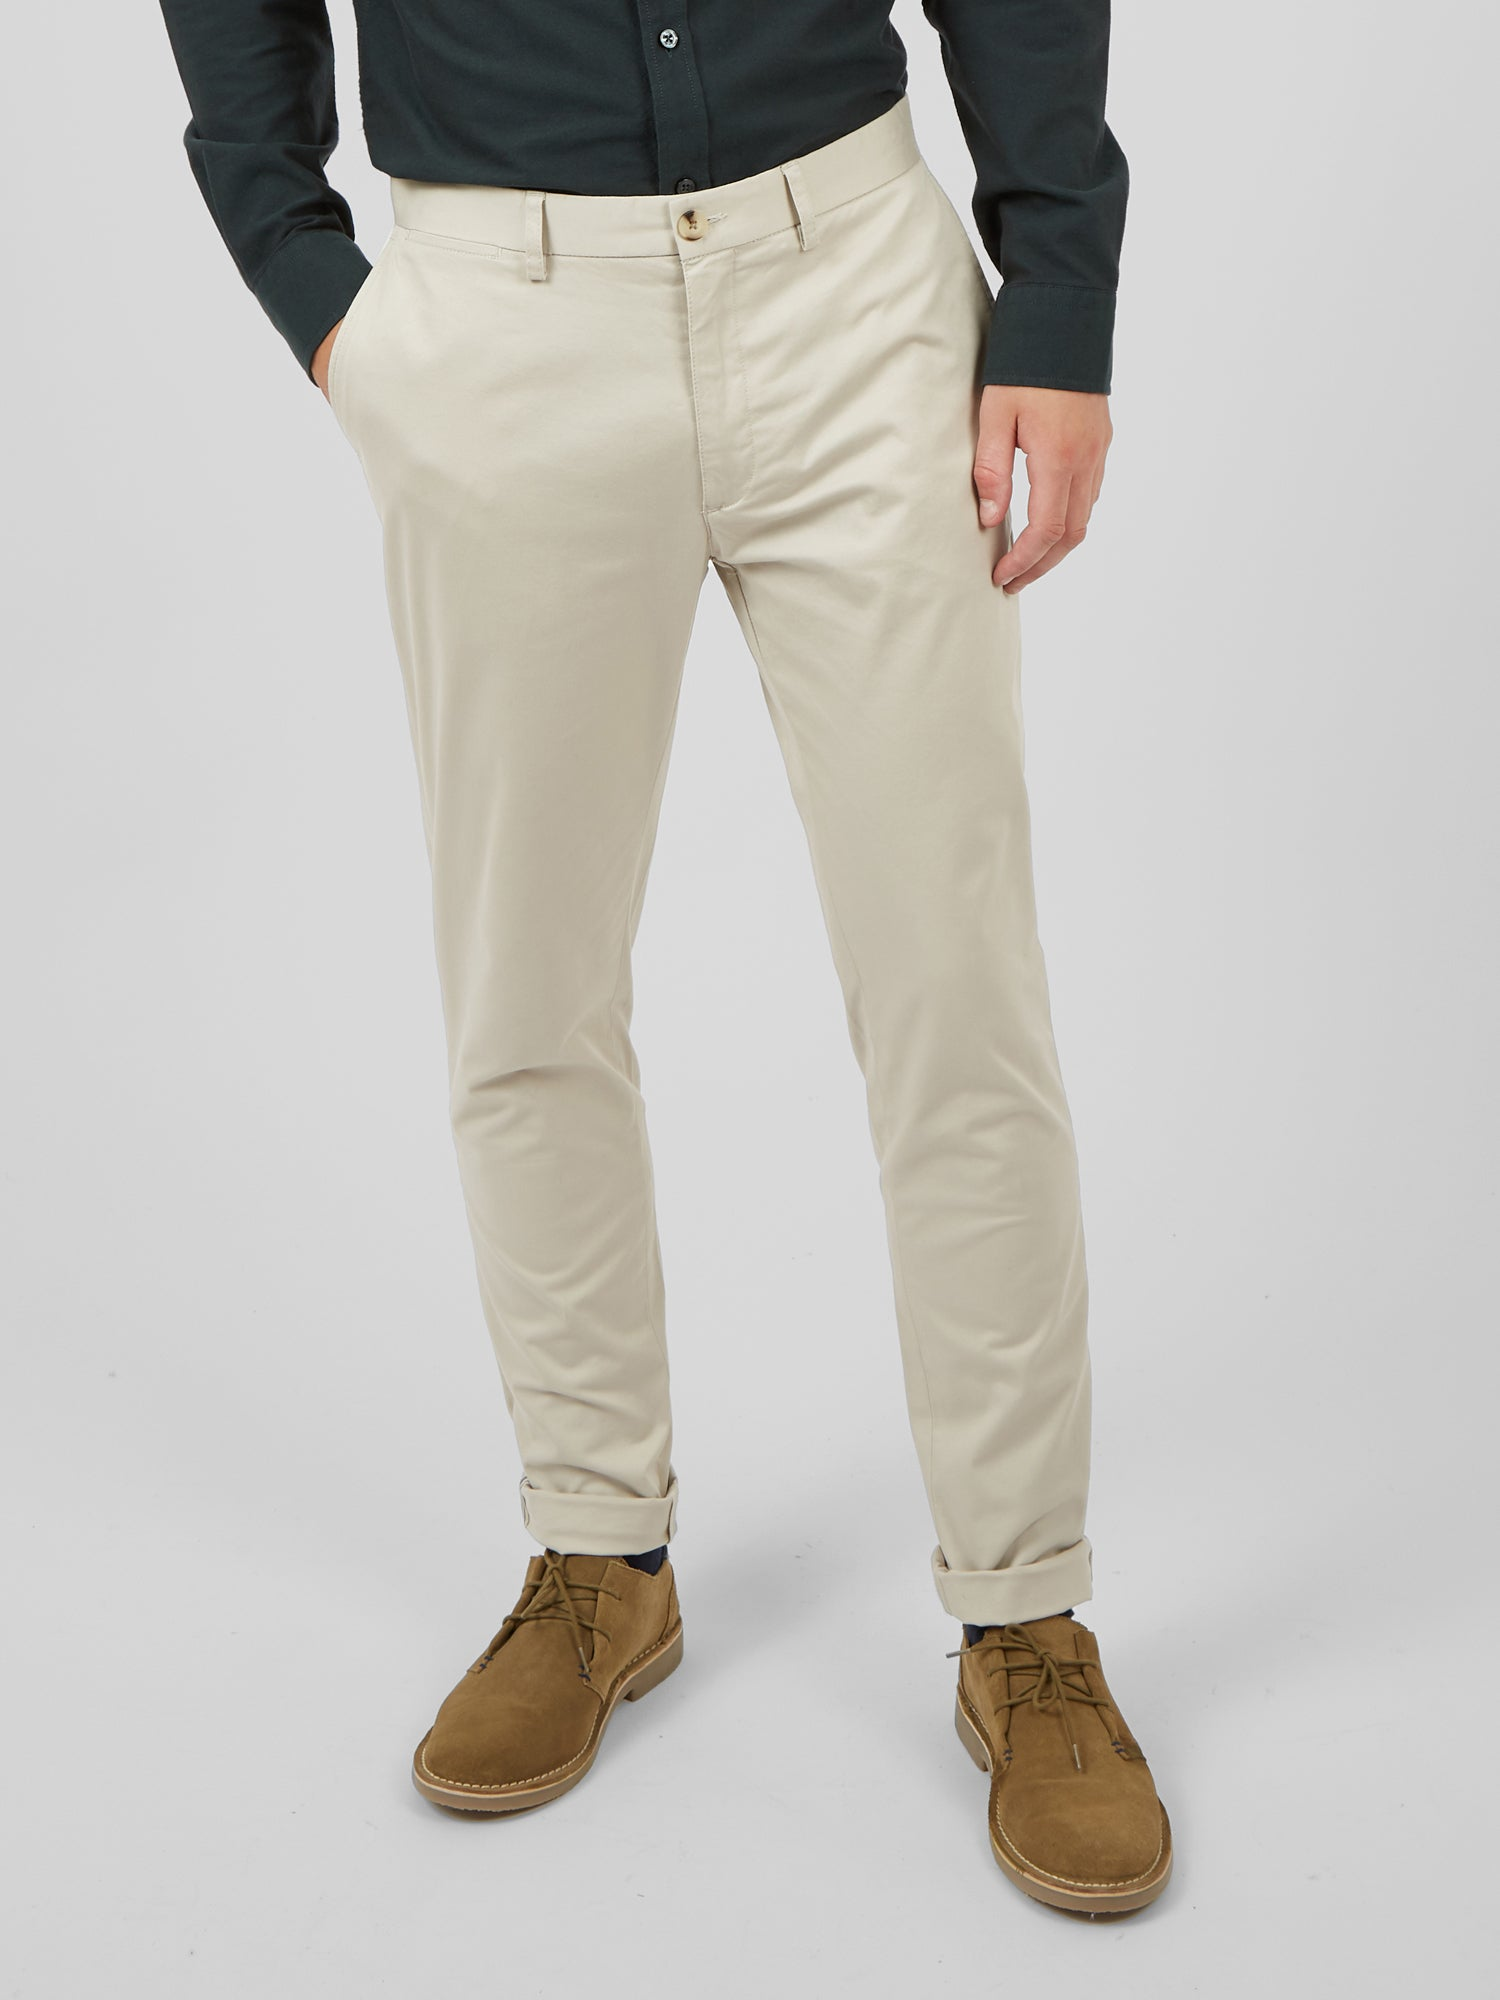 Signature Skinny Stretch Chino Pant - Putty